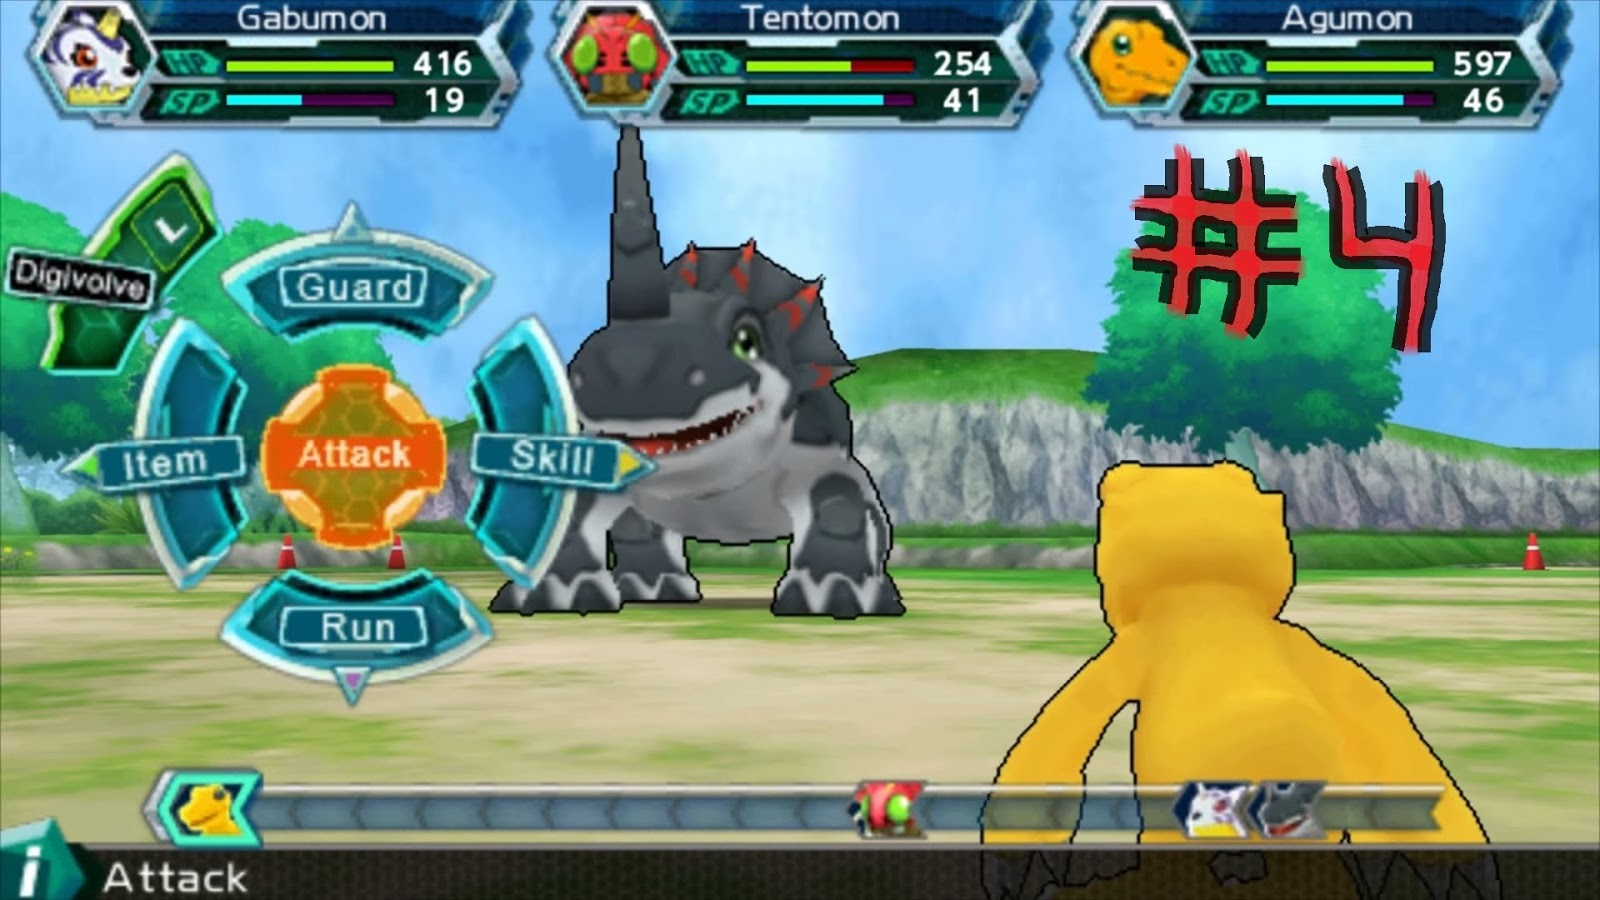 Download Digimon Adventure English Patch v5 PSP PPSSPP ...